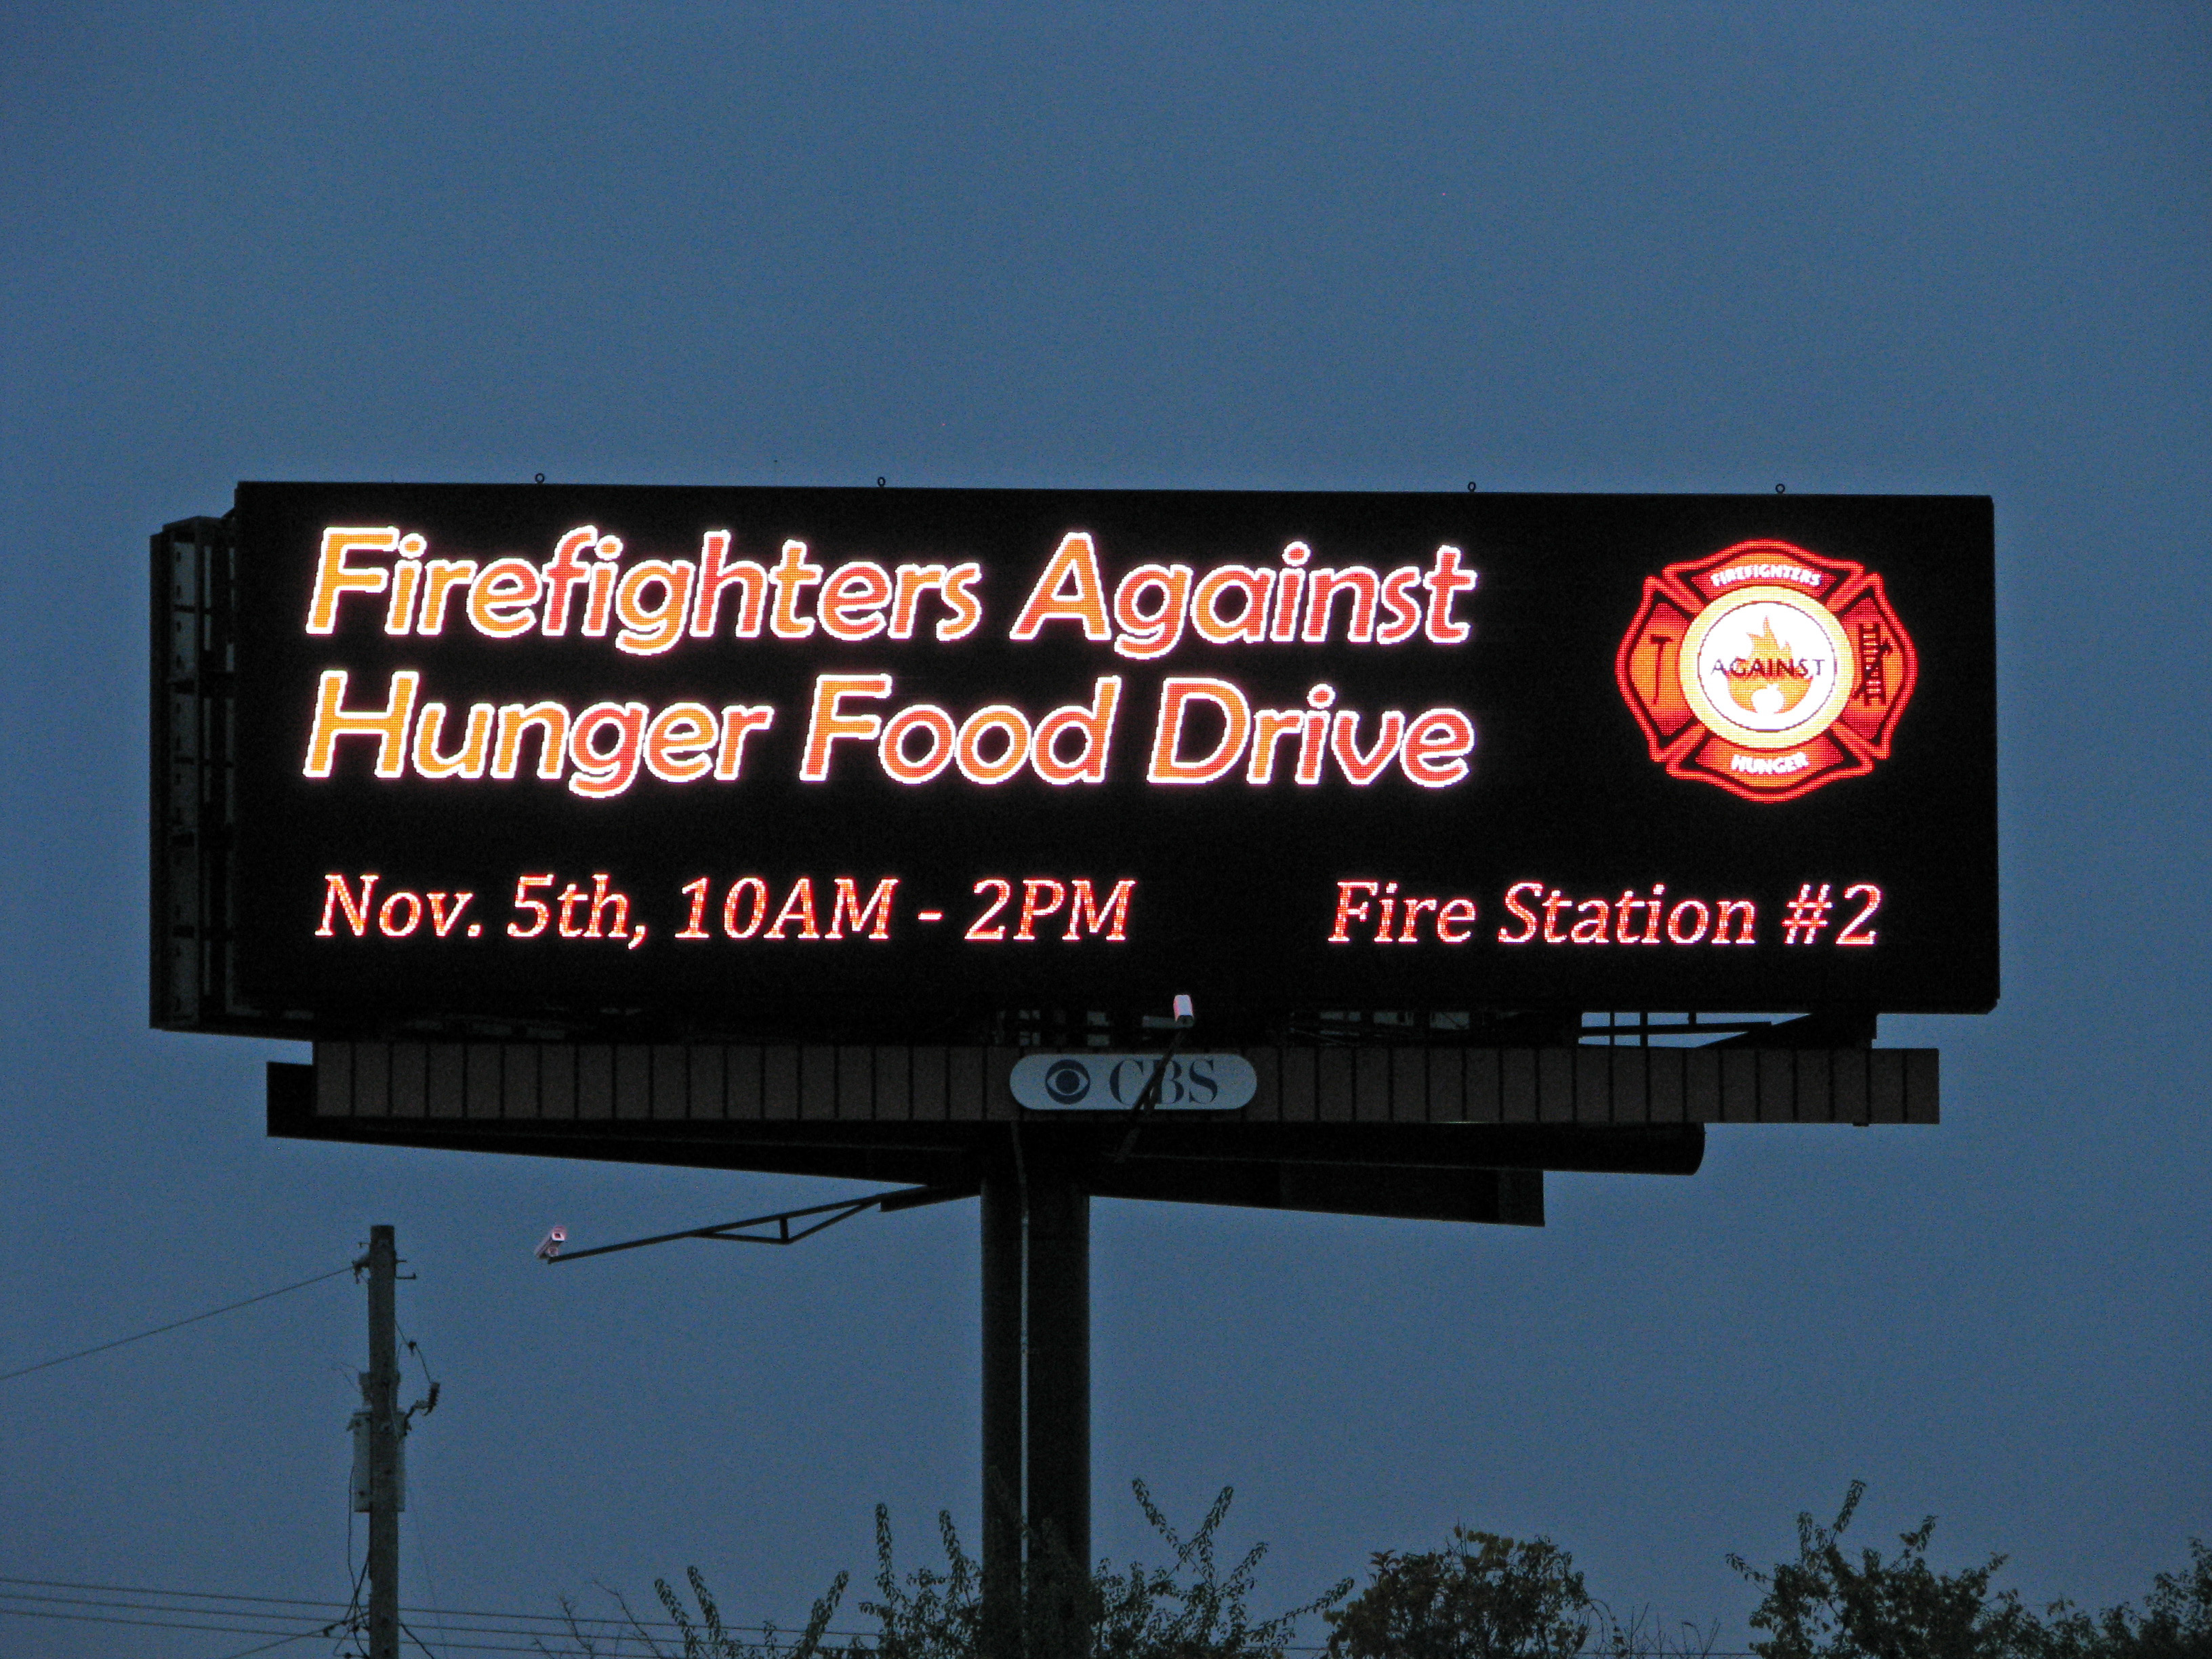 firefighters against hunger food drive